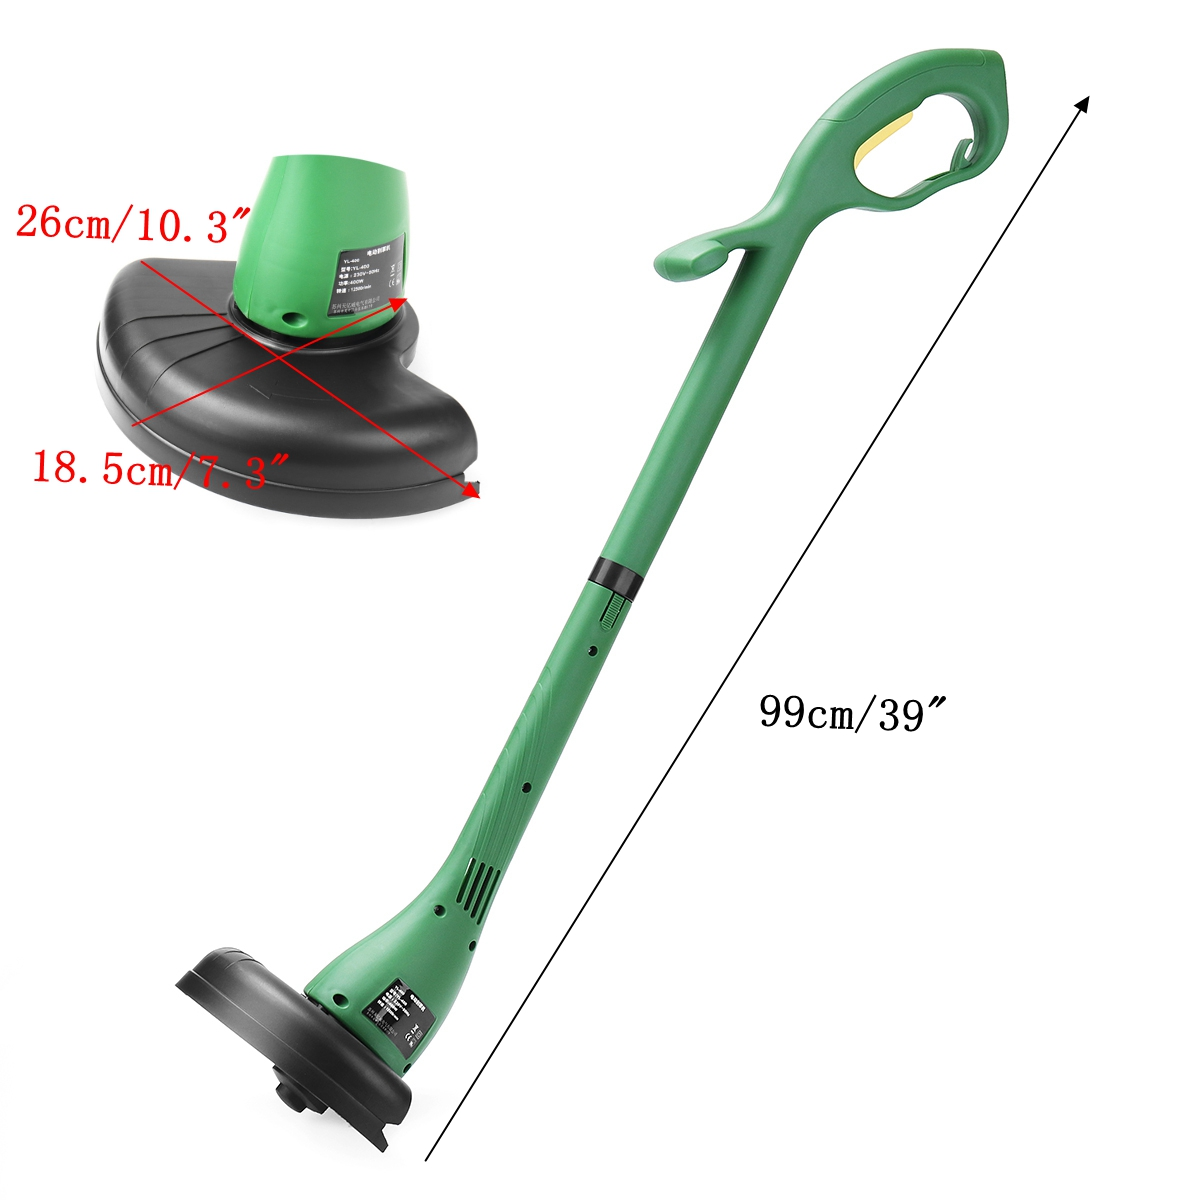 Garden Weeder Accessory Parts Universal Grass Trimmer Nylon Line Coil Garden Strimmer Lawn Mower Fitting Ornament Grass Trimmer